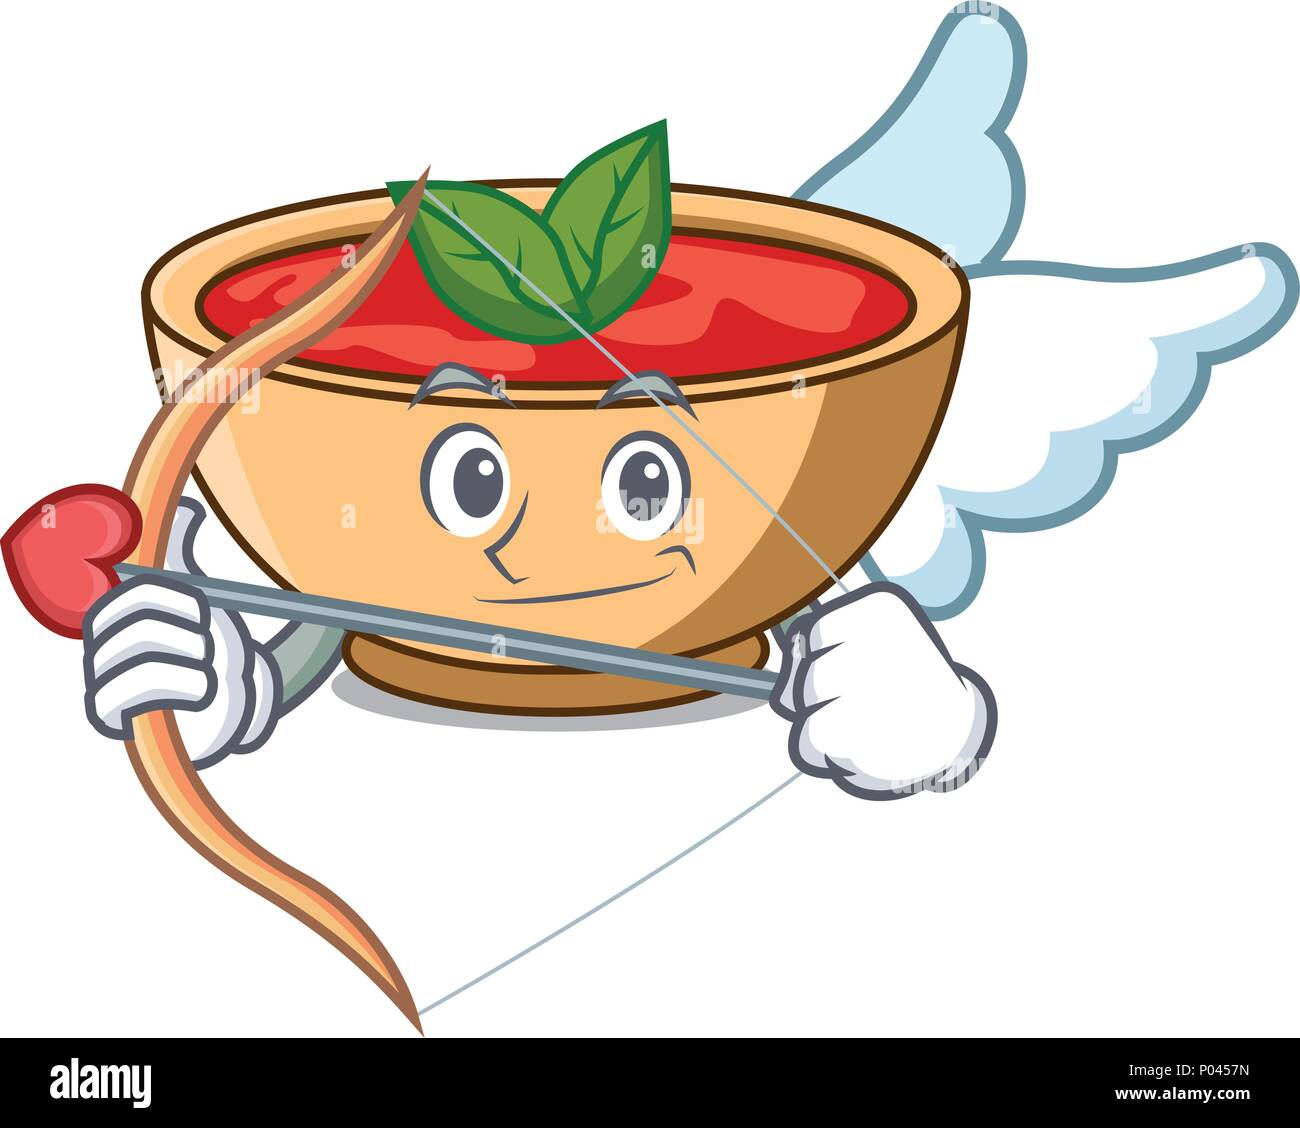 Cupid tomato soup character cartoon - Stock Vector